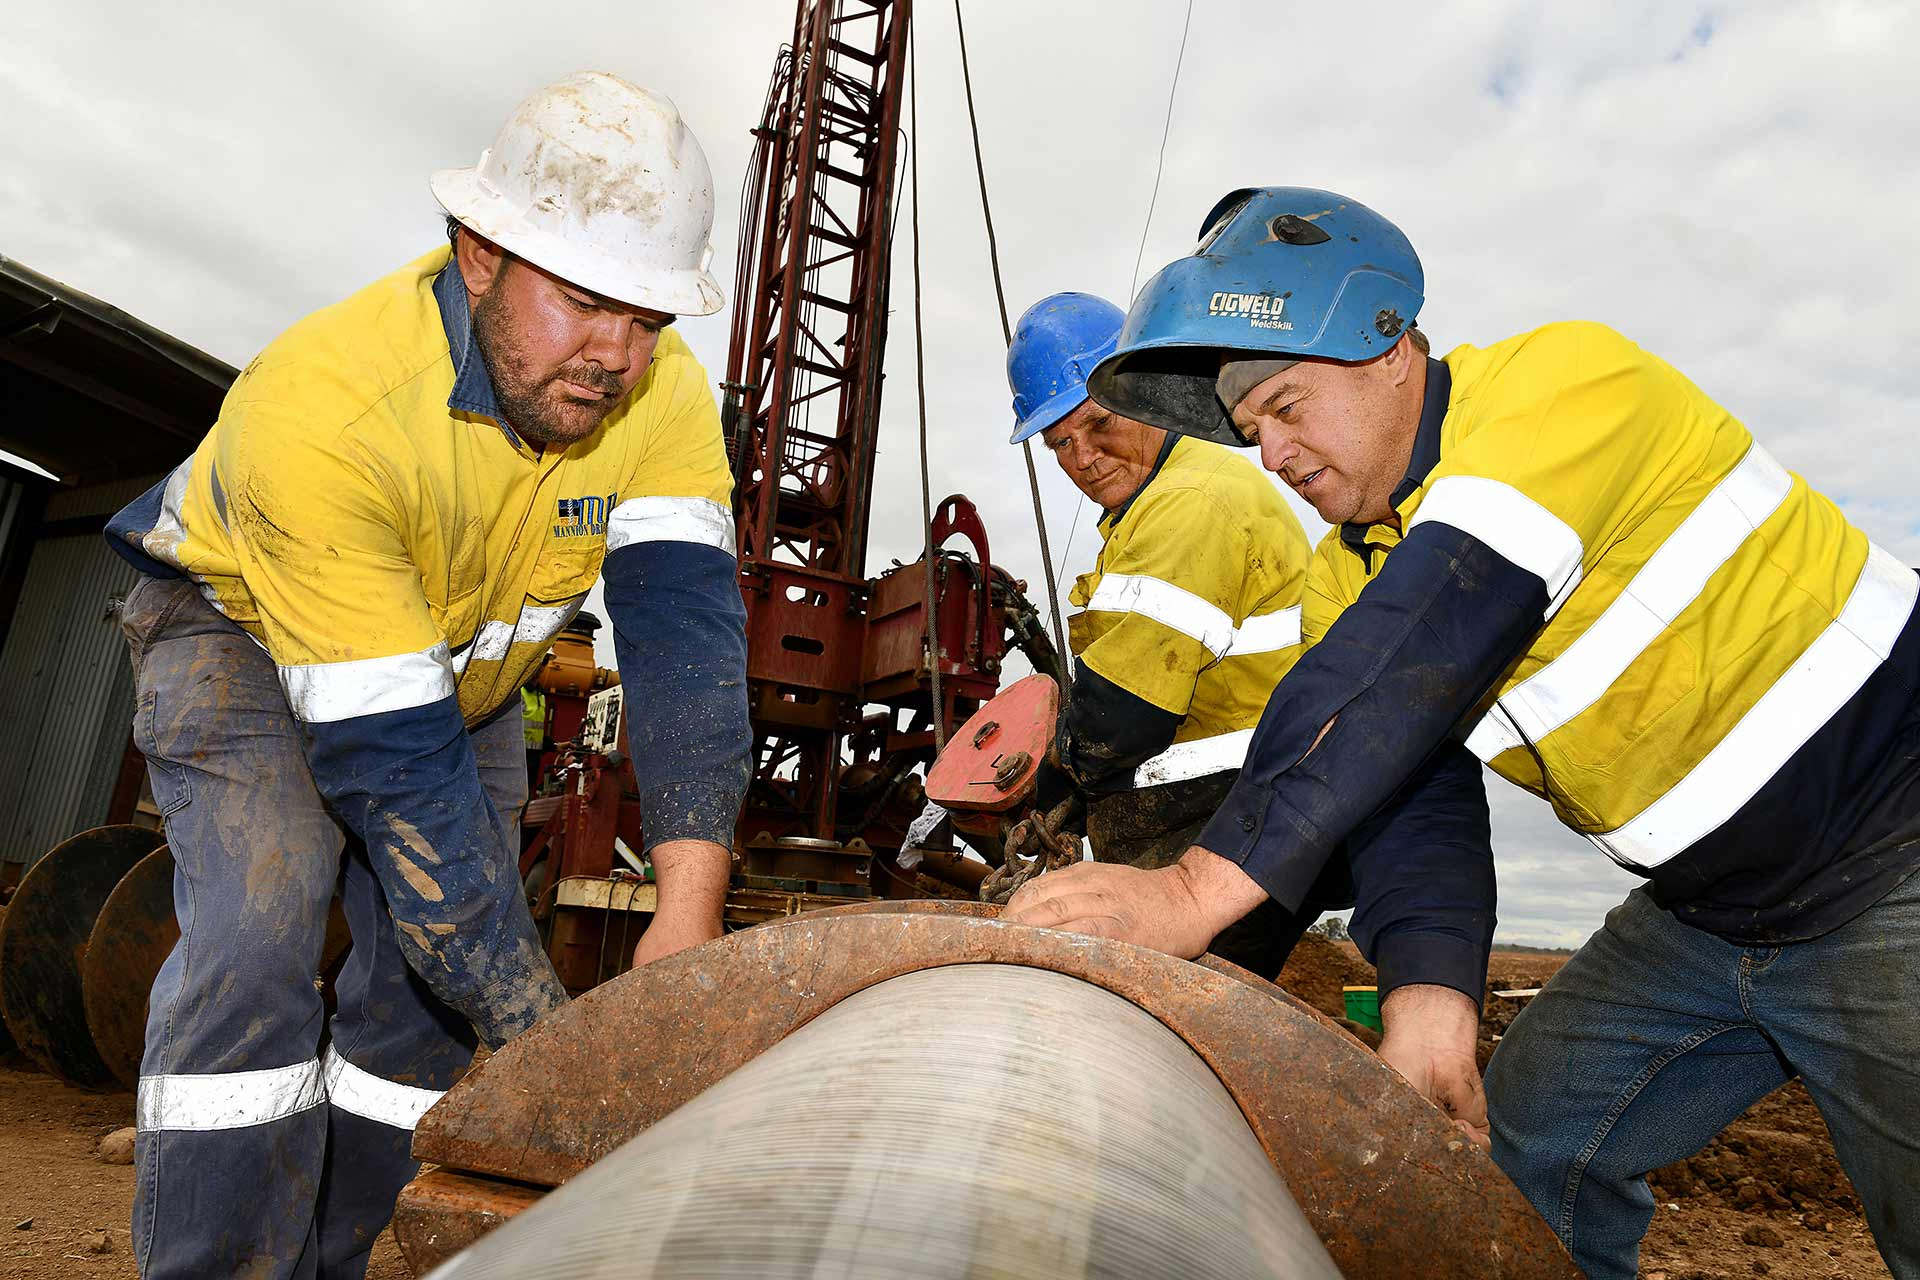 3 men operating a water drilling machine